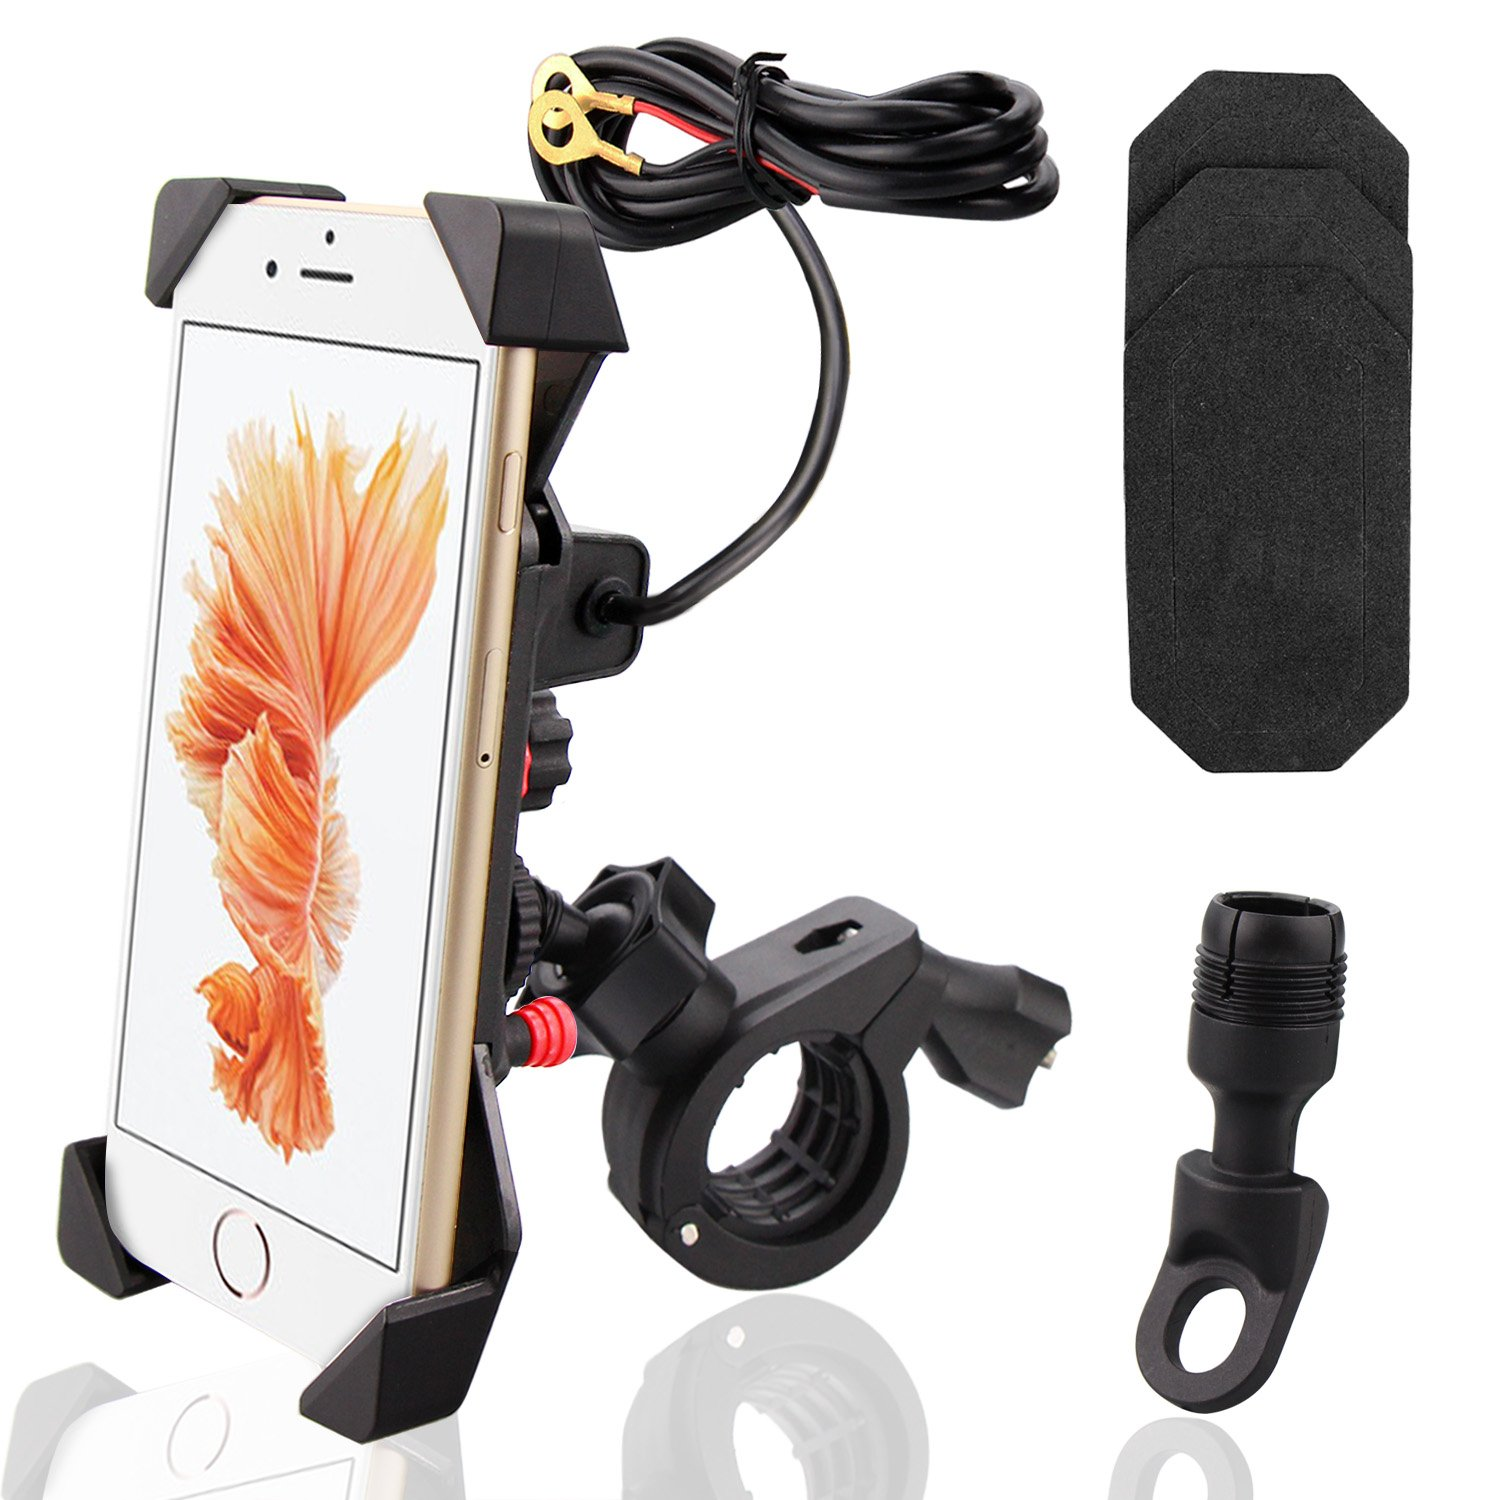 Motorcycle Phone Charging Mount, BonyTek Telescopic Type Motorcycle Bicycle Handlebar & Mirror Base GPS Cell Phone Mount Holder with USB Charging Port & Switch, X-Grip Clamp, Waterproof, 360° Rotation